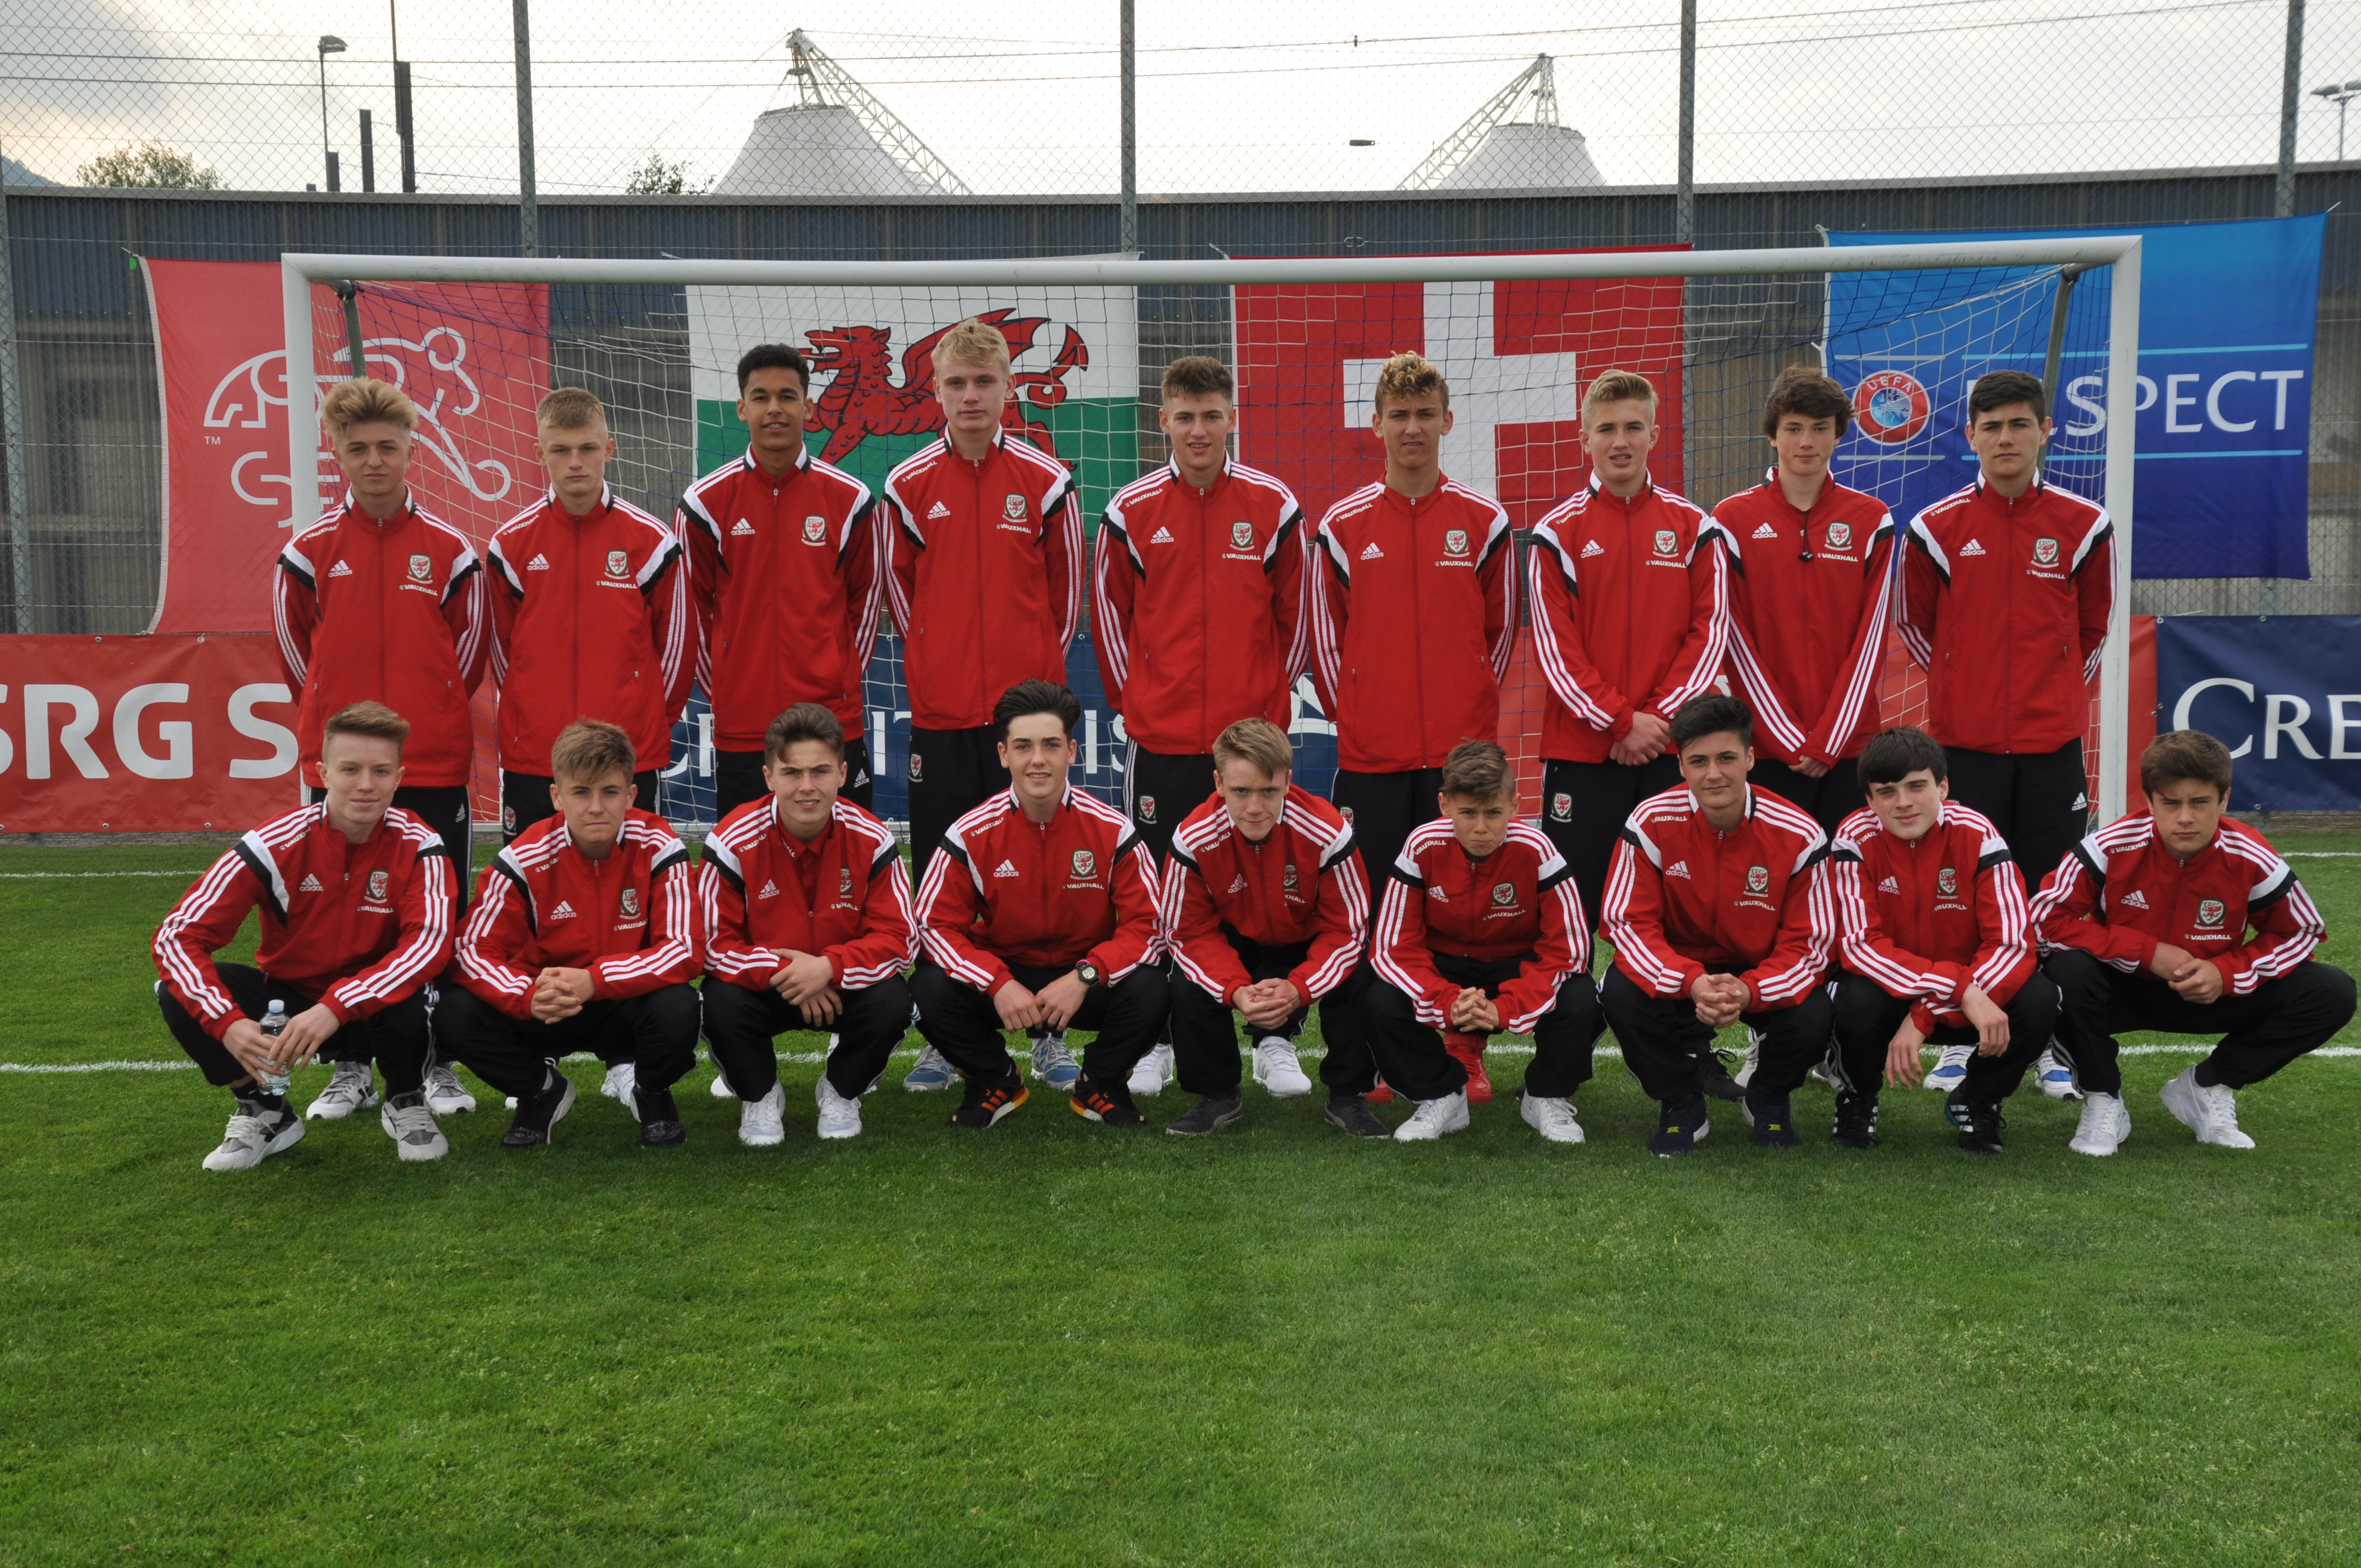 U16 National Boys Squad International Friendlies